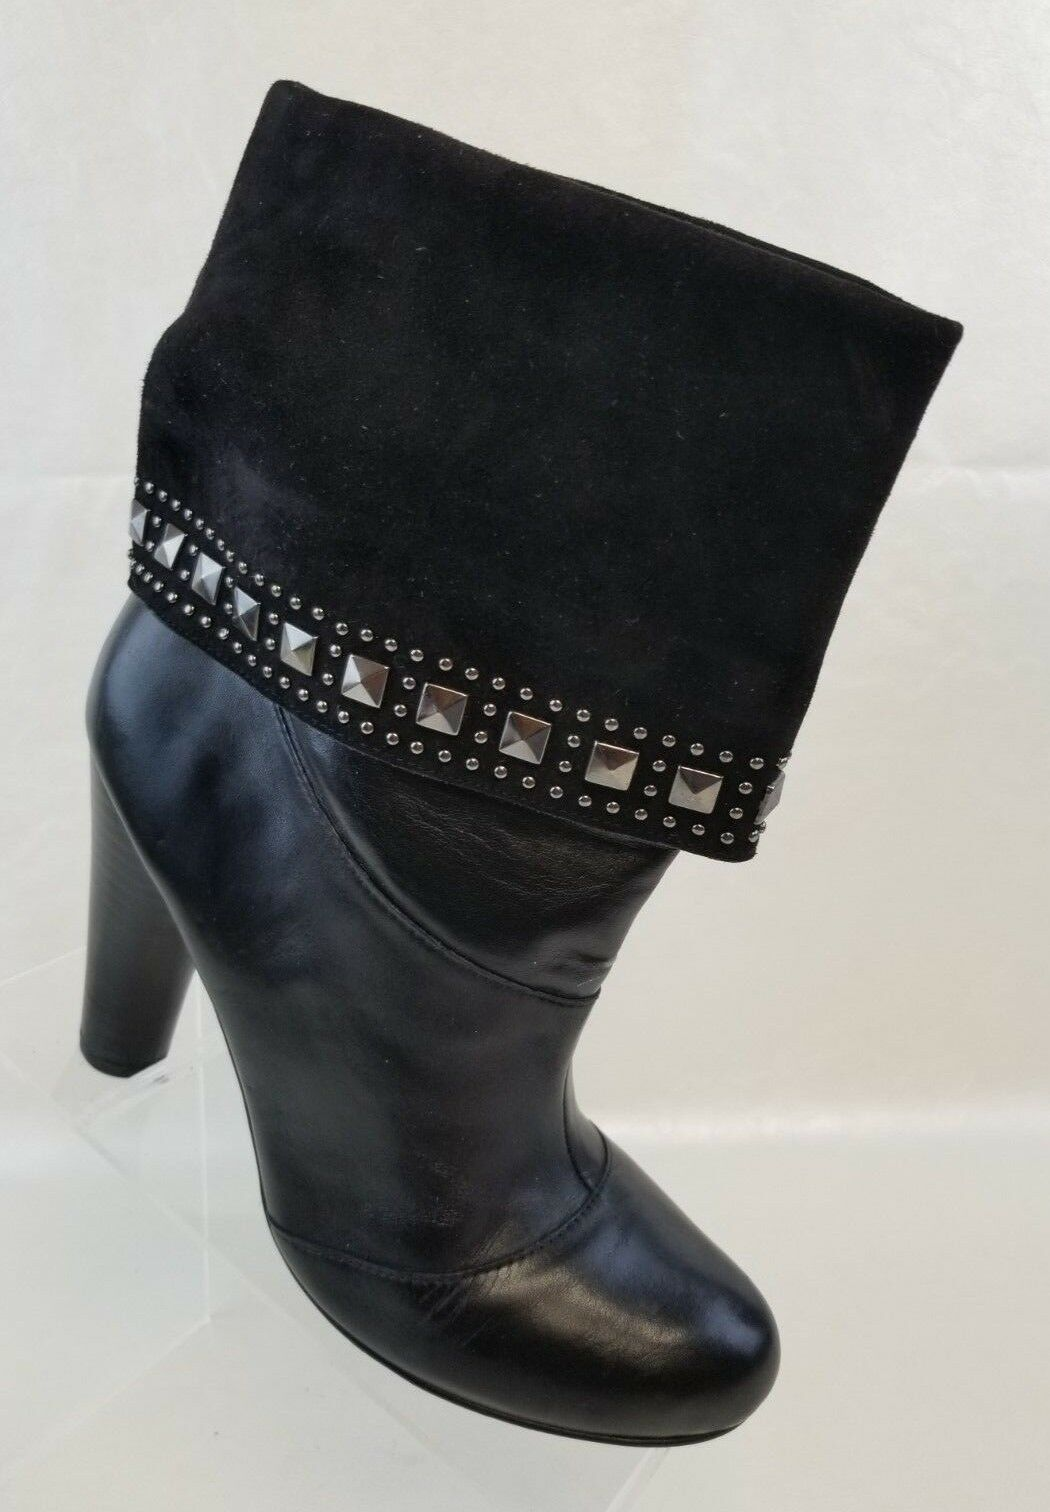 Very Volatile Ankle Ankle Ankle Boots Ashbury Cuff Studded Womens Black Leather Pull On 10 44c250